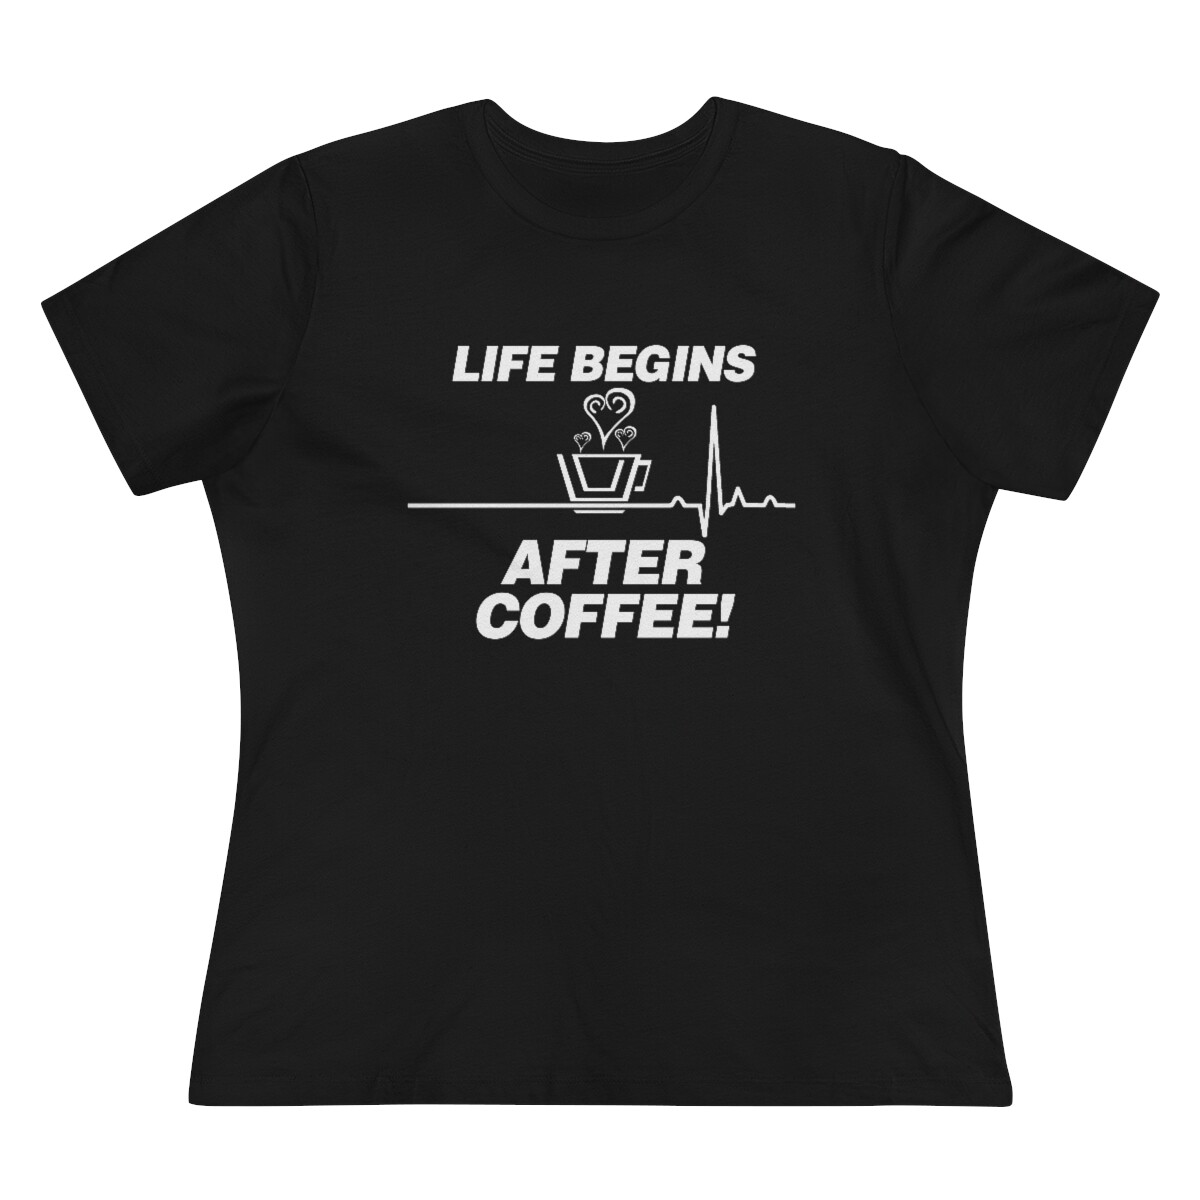 *Life Begins After Coffee - 6400